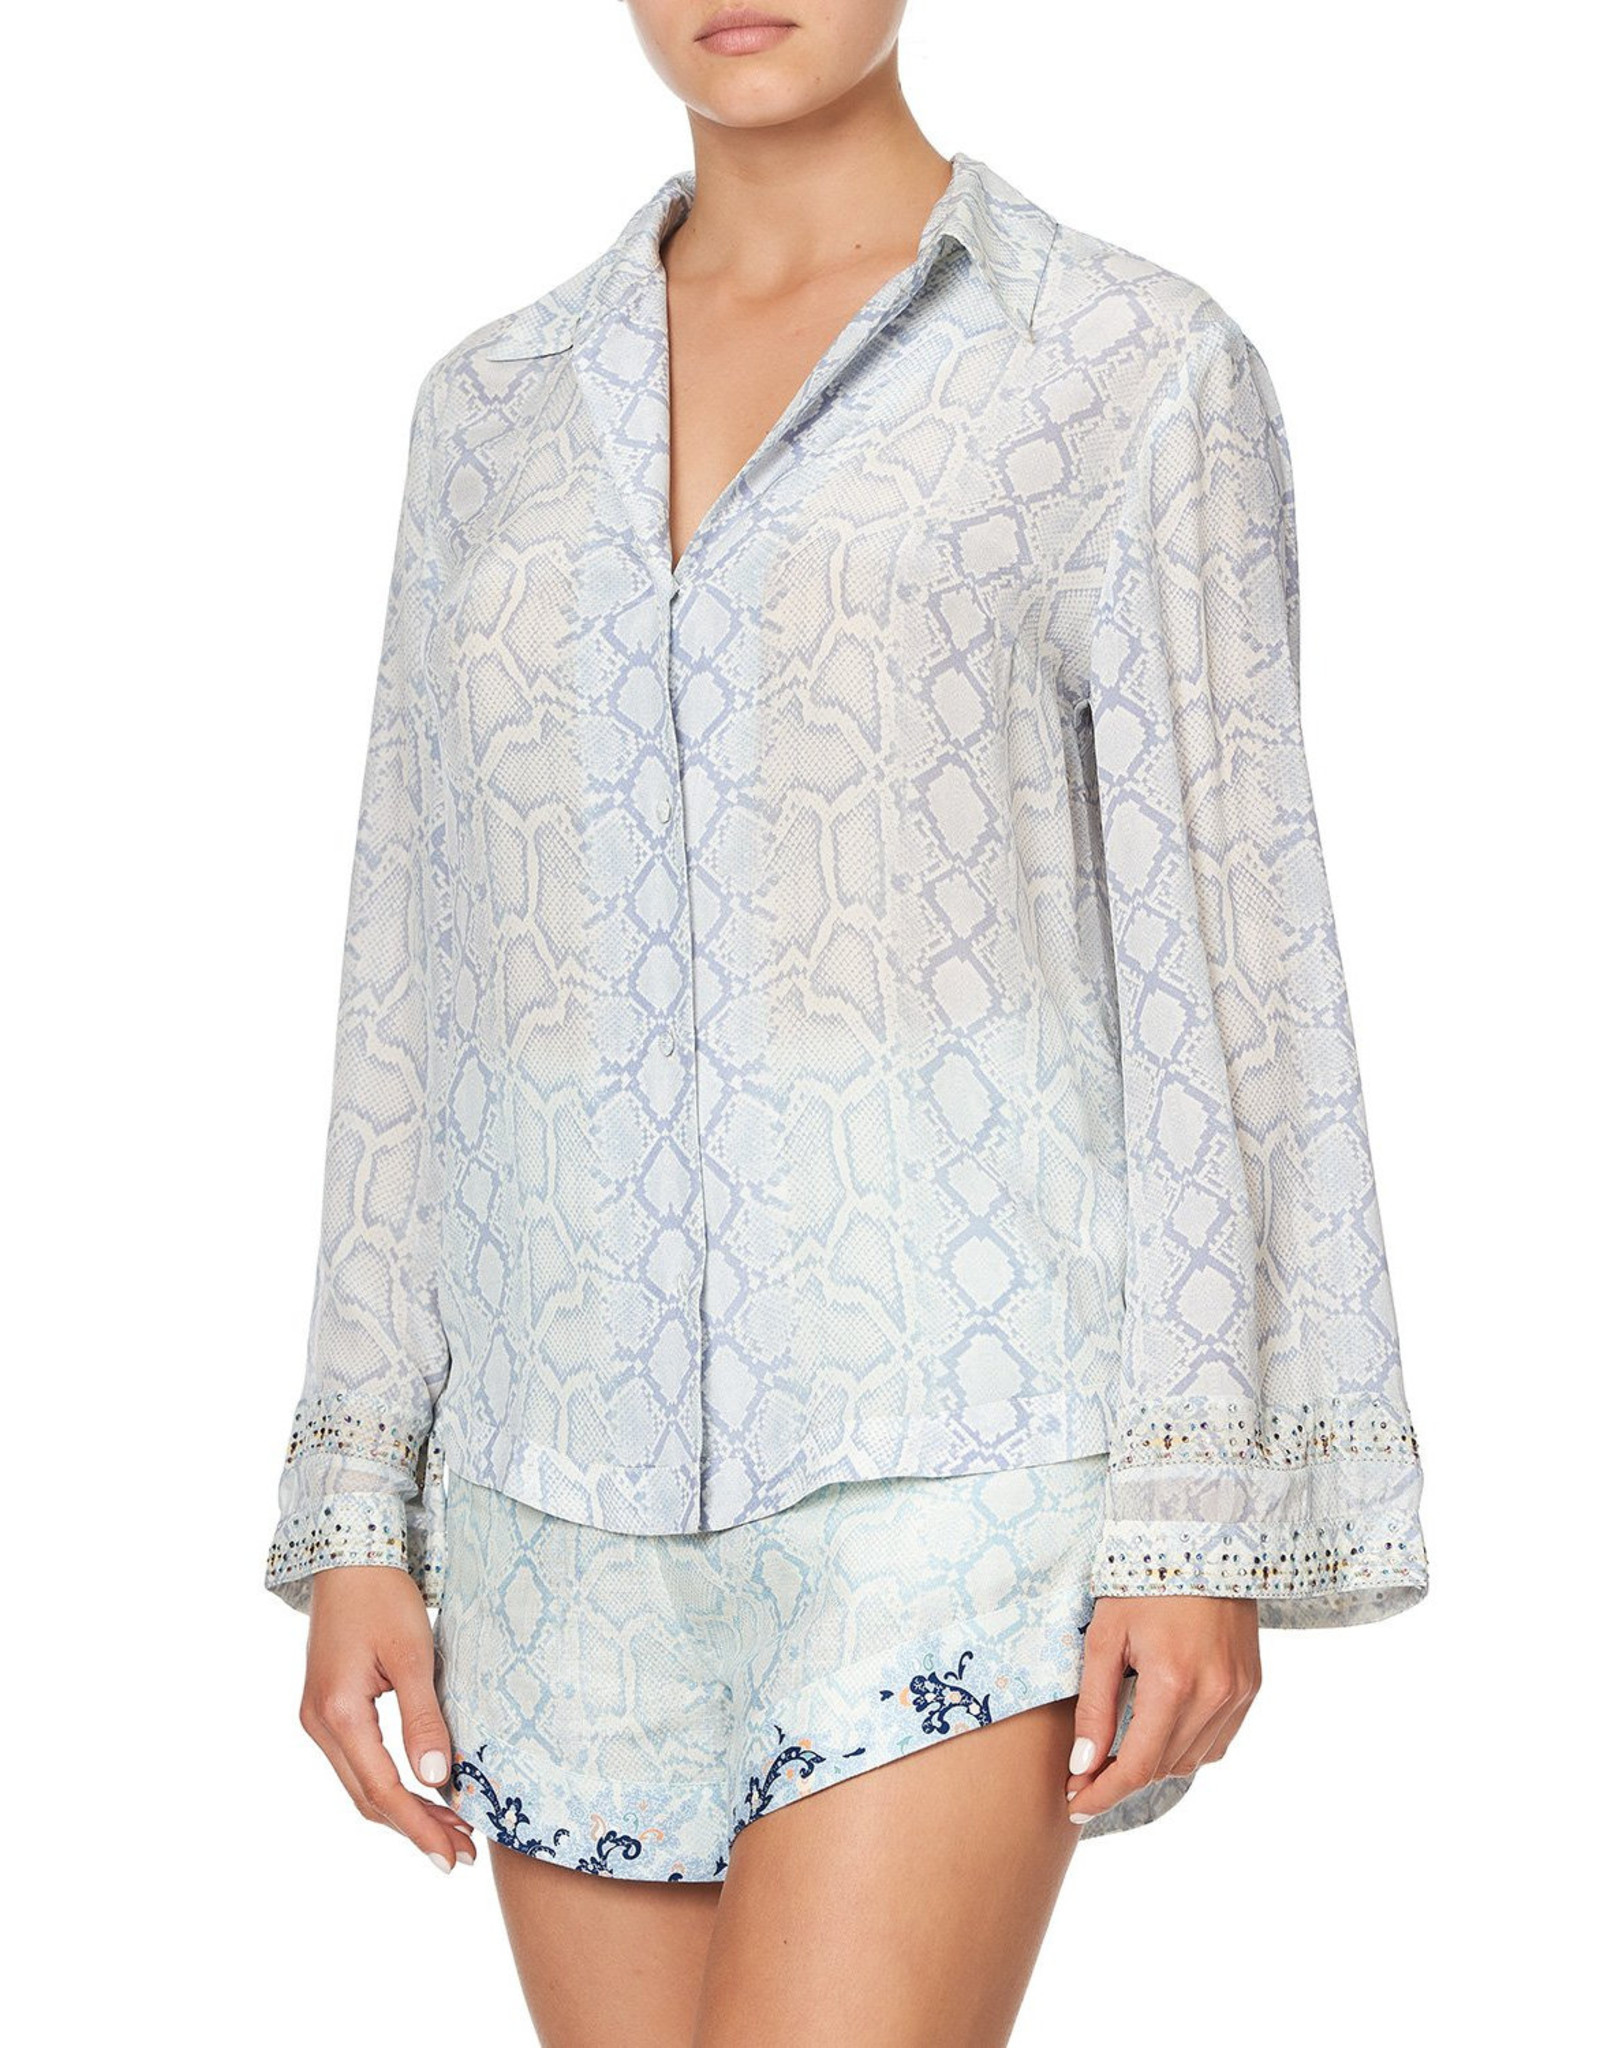 SALE - CAMILLA BUSH DIAMOND BUTTON DOWN SHIRT WITH CONTRAST